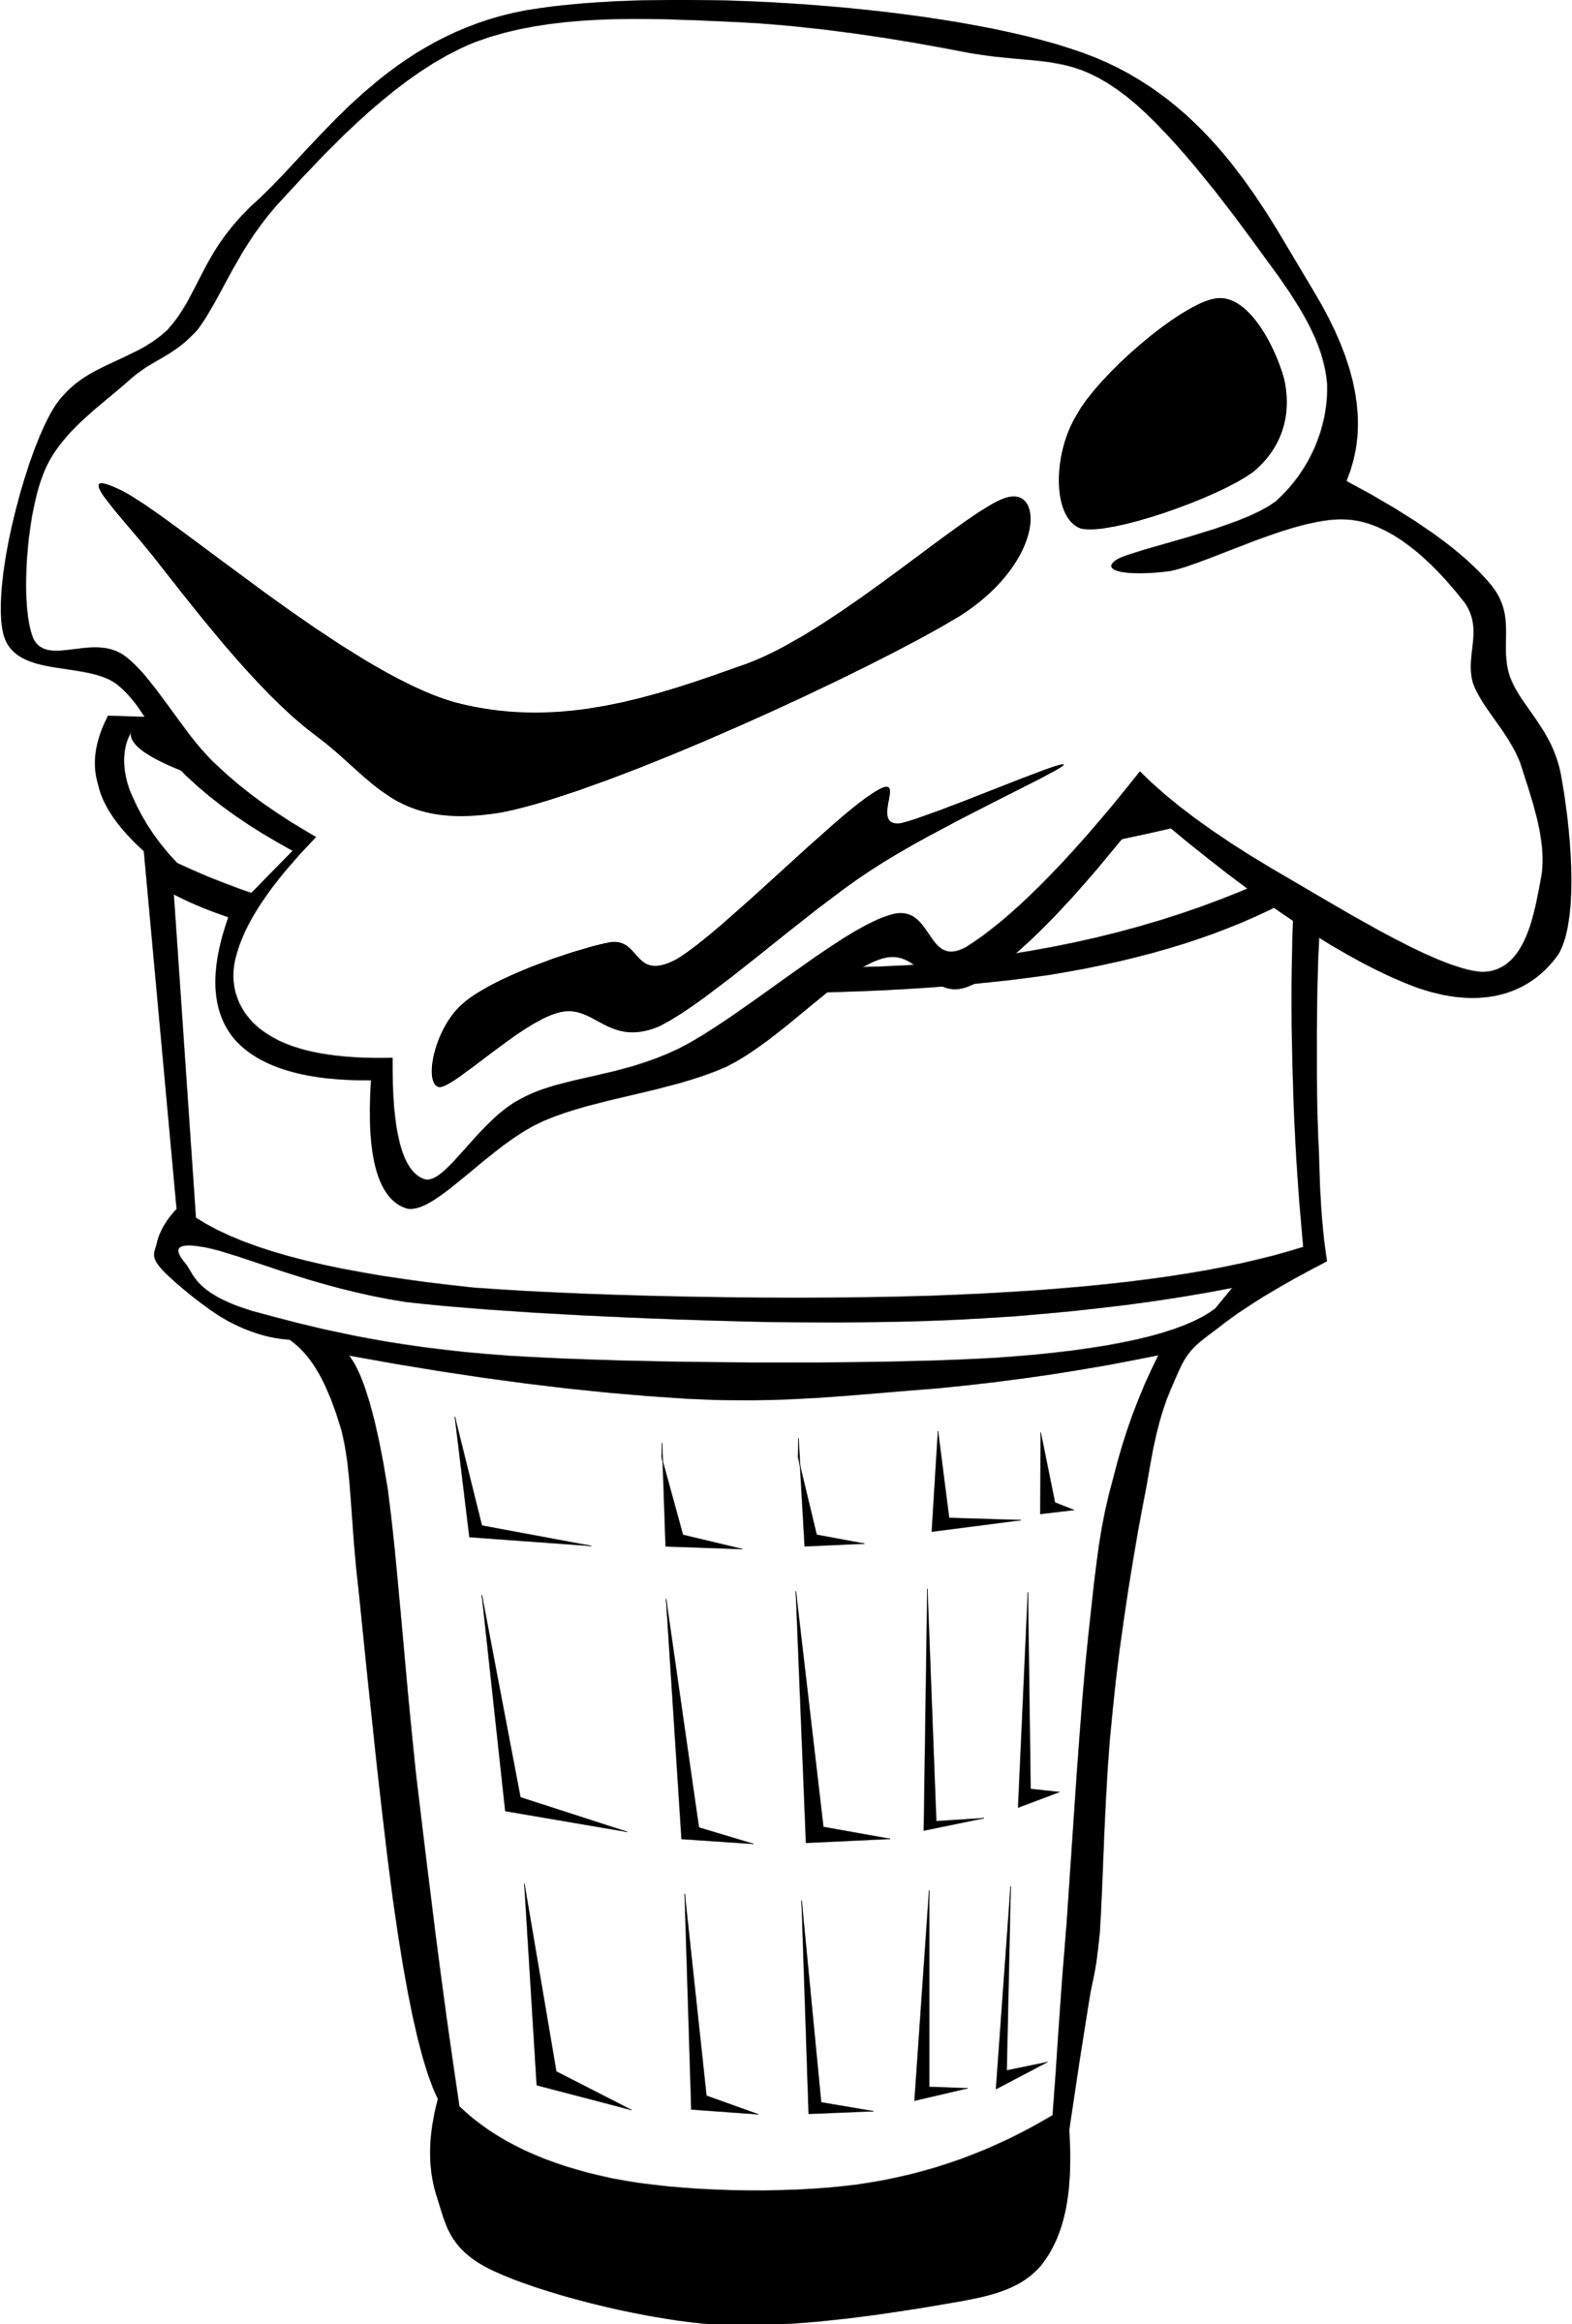 image transparent stock Snow cone drawing at. Ice cream shop clipart black and white